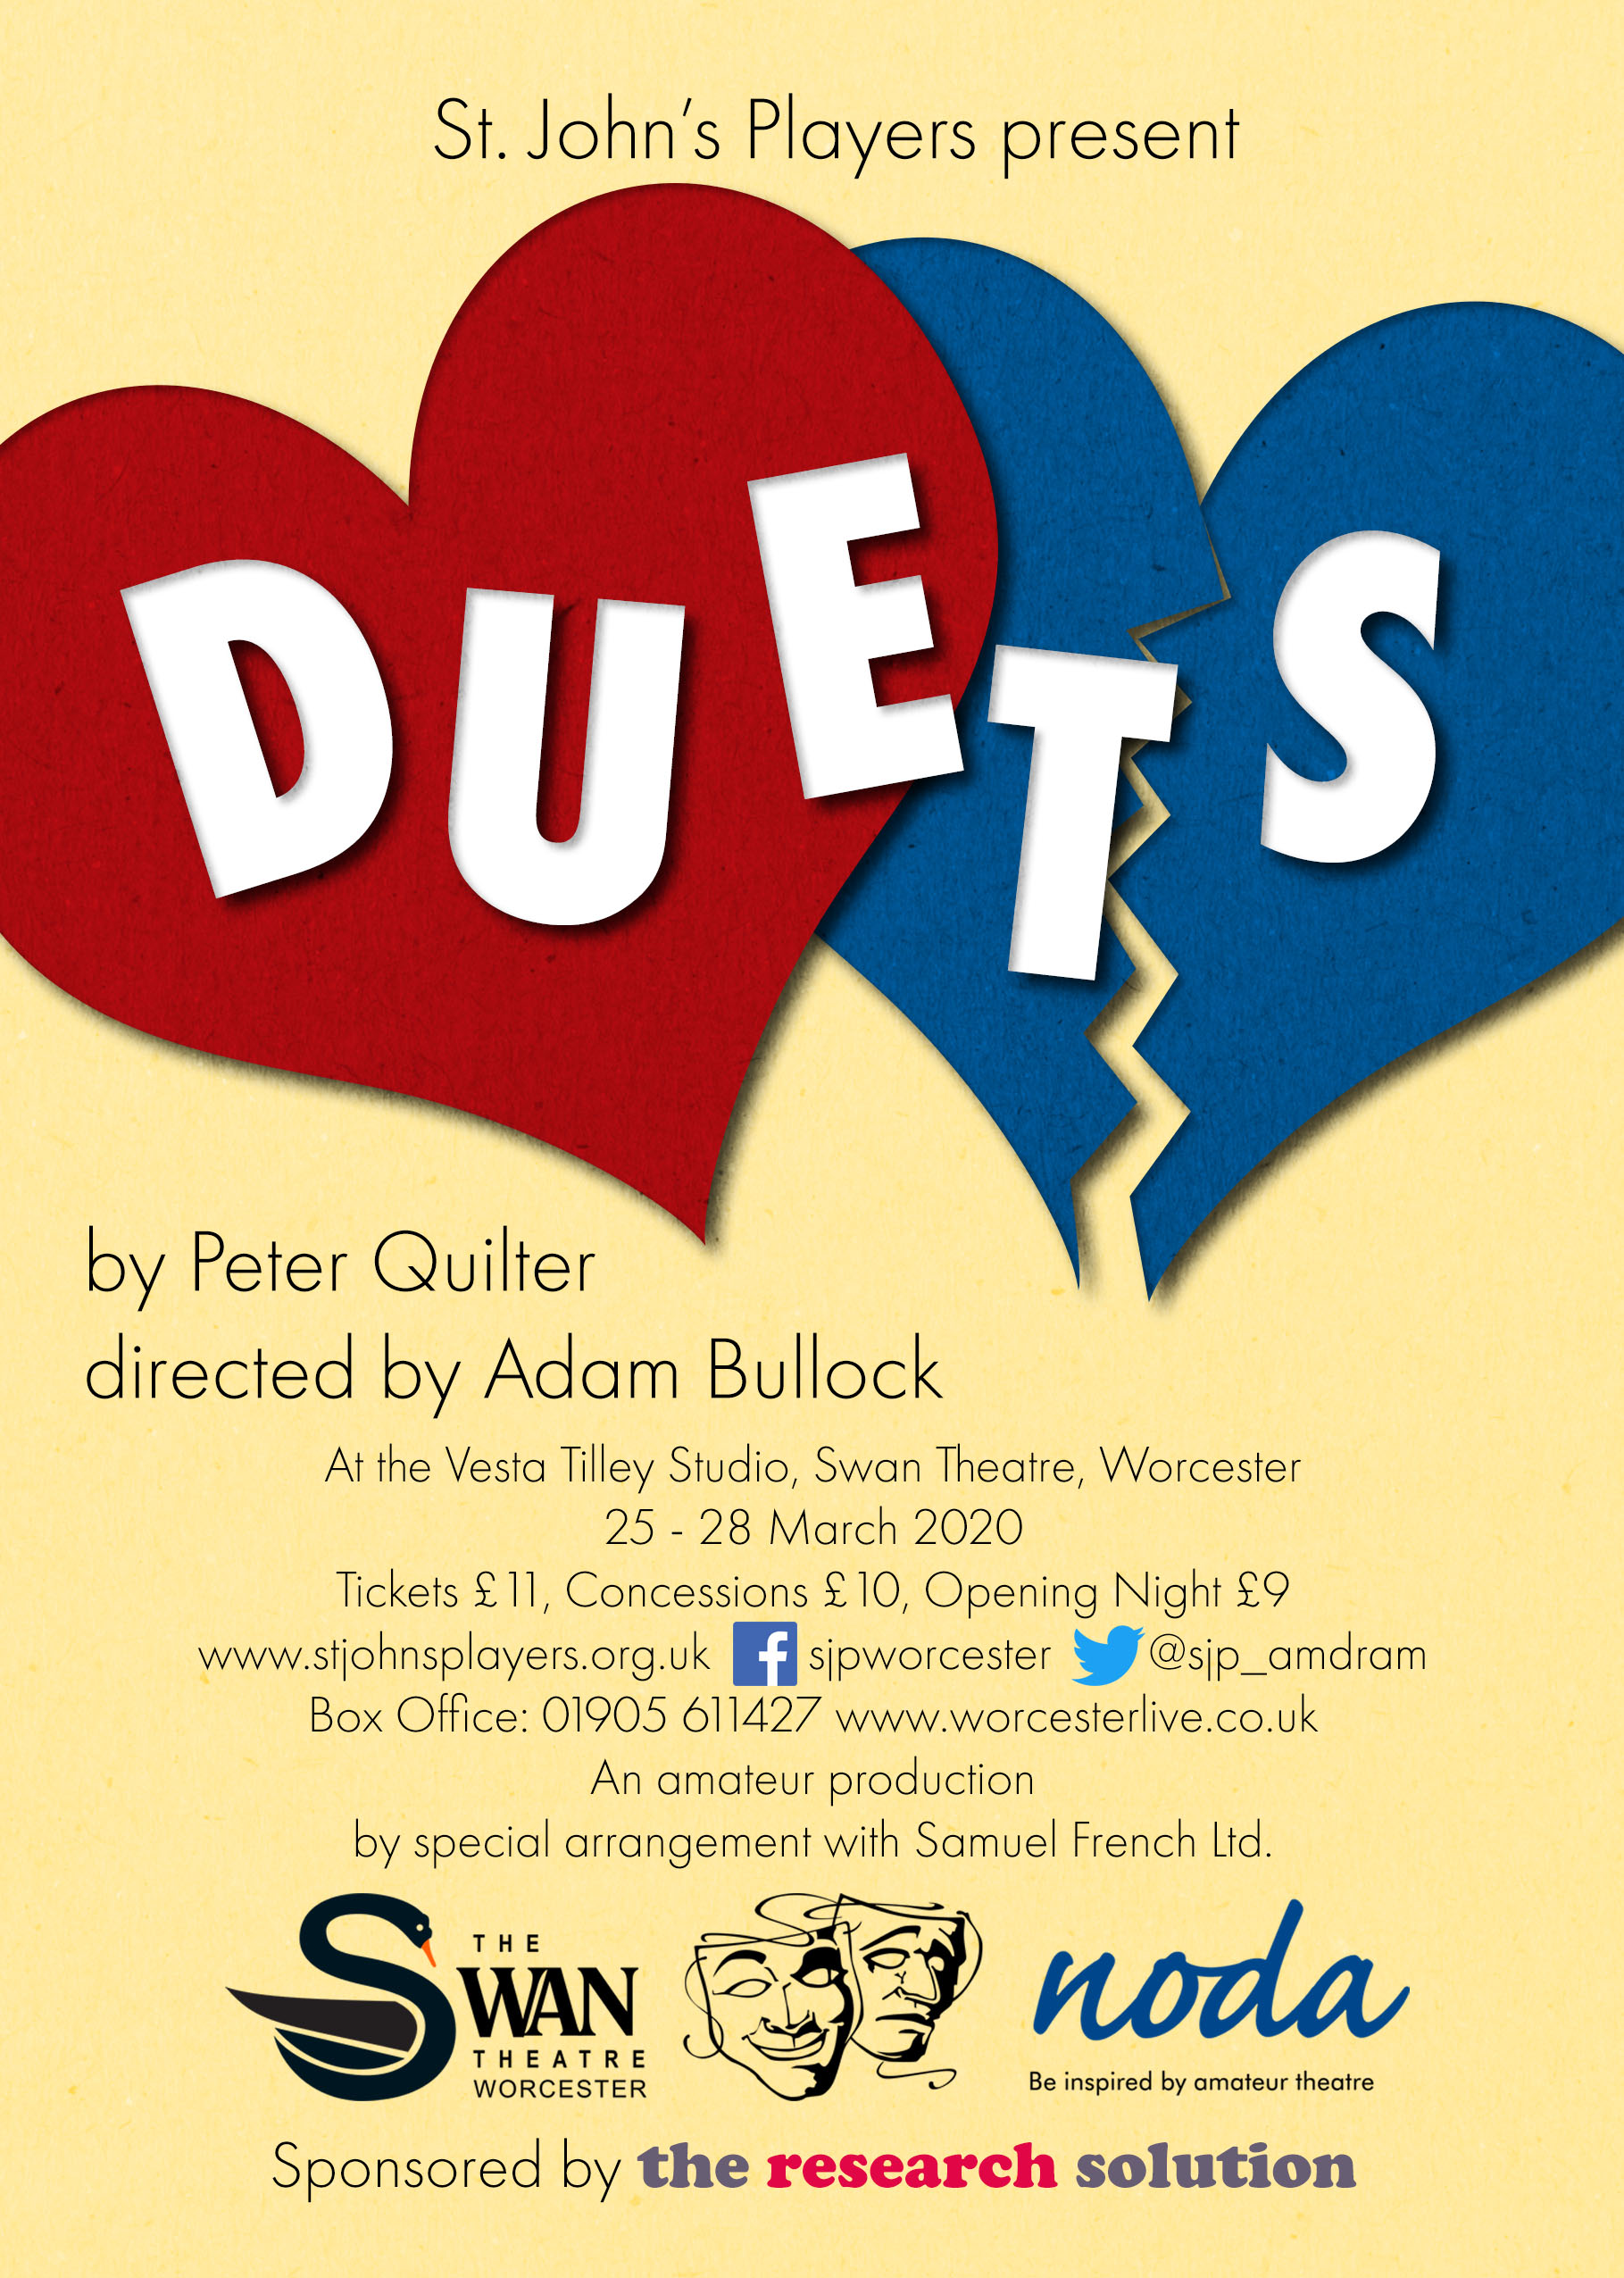 St John's Players present 'Duets'